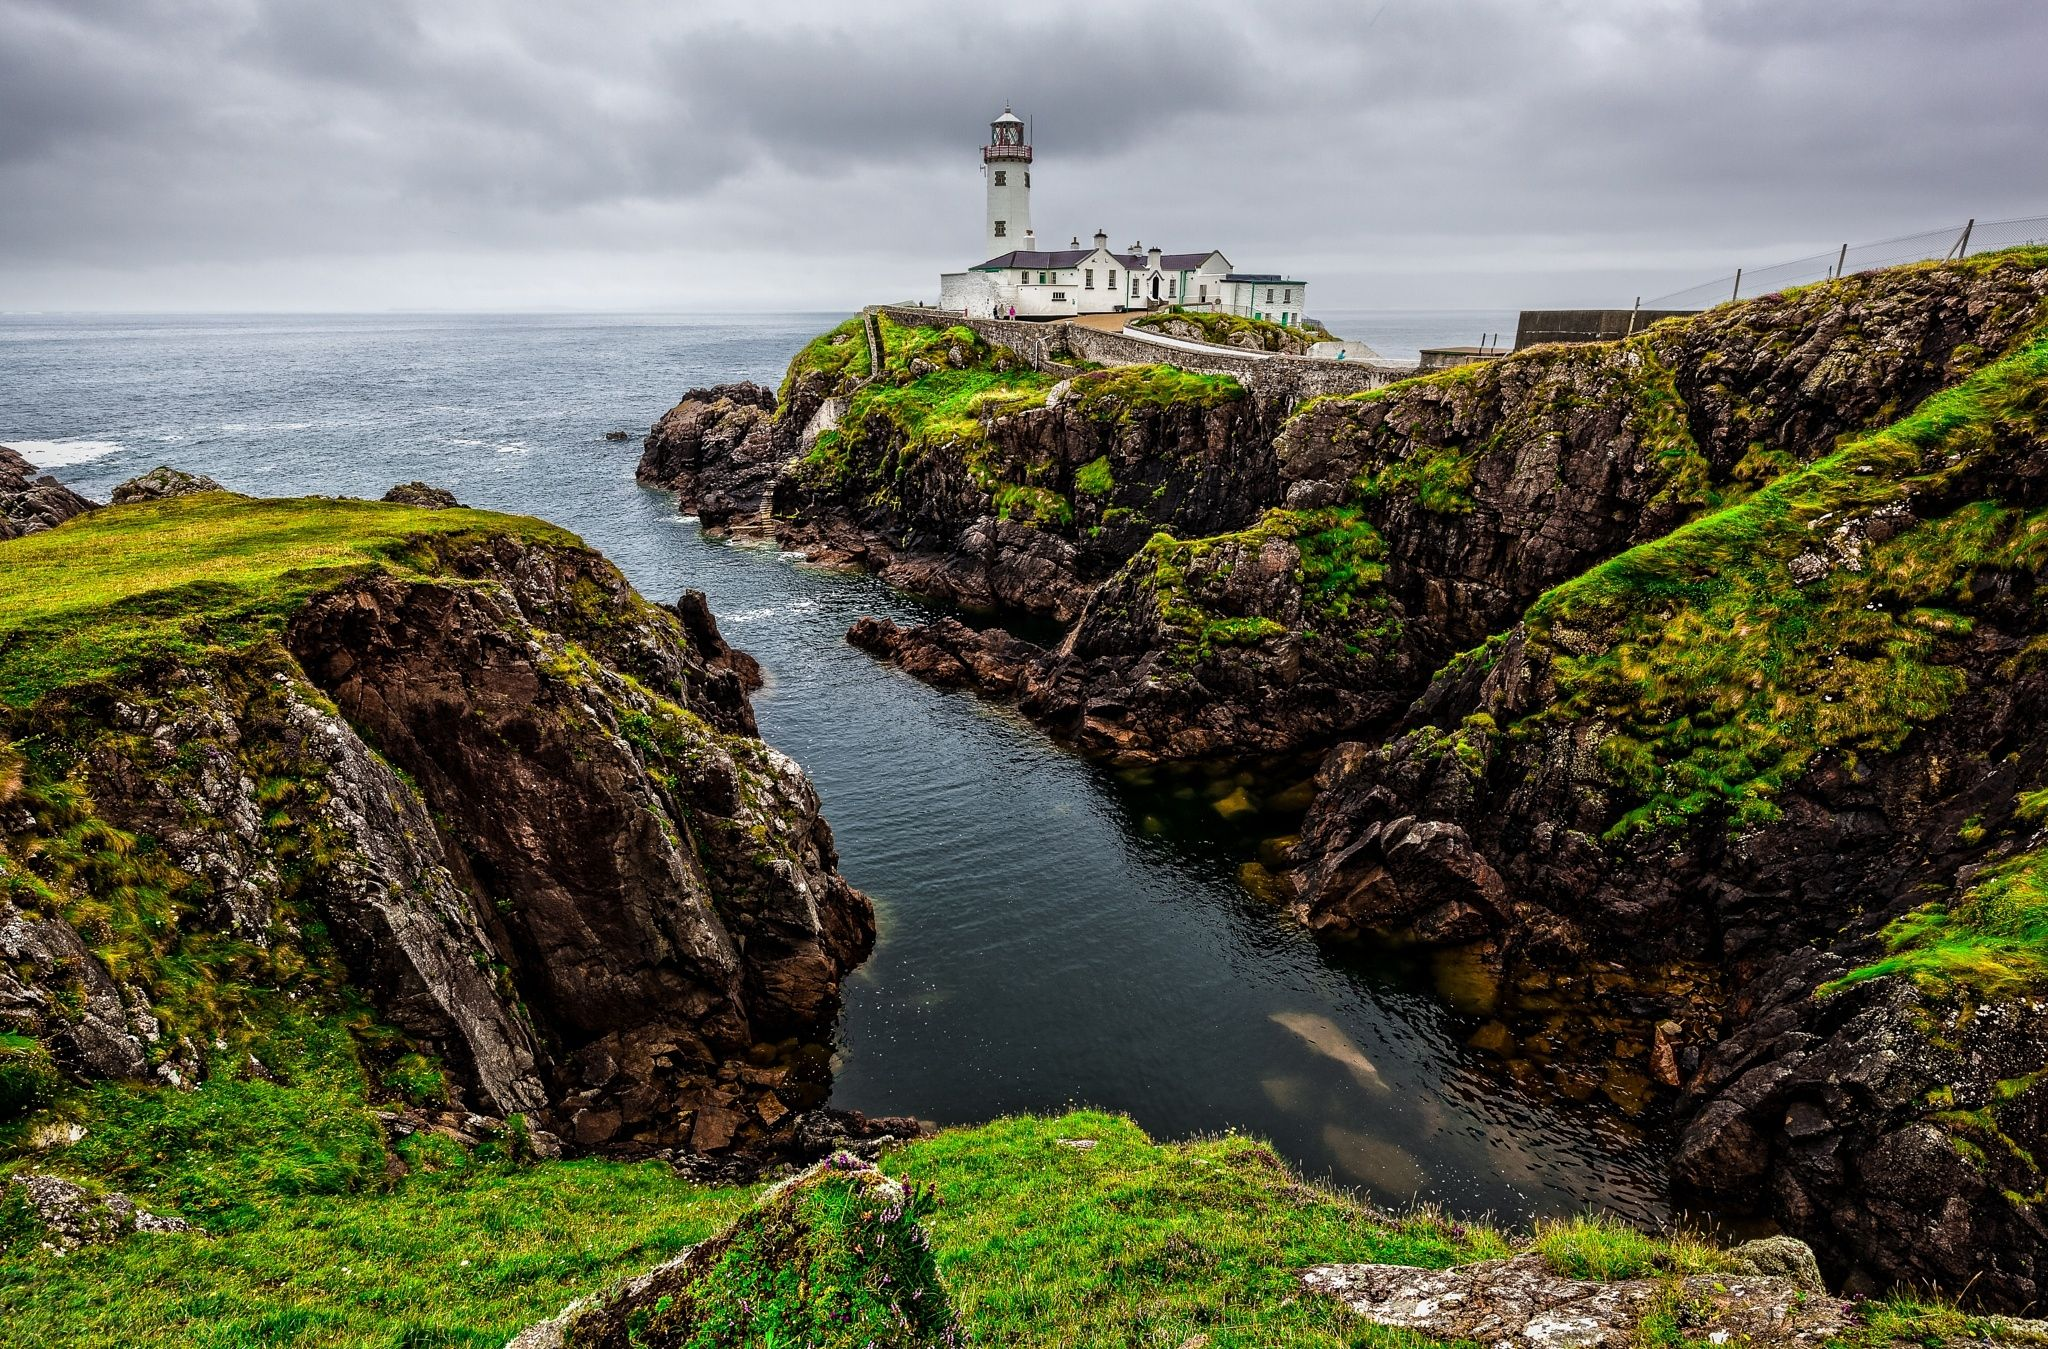 """Lighthouse - """"Oh woe betide those who say They don't need no light to light their way They think they're safe enough on their own Drown in murky depths below"""" - The Waifs :))"""